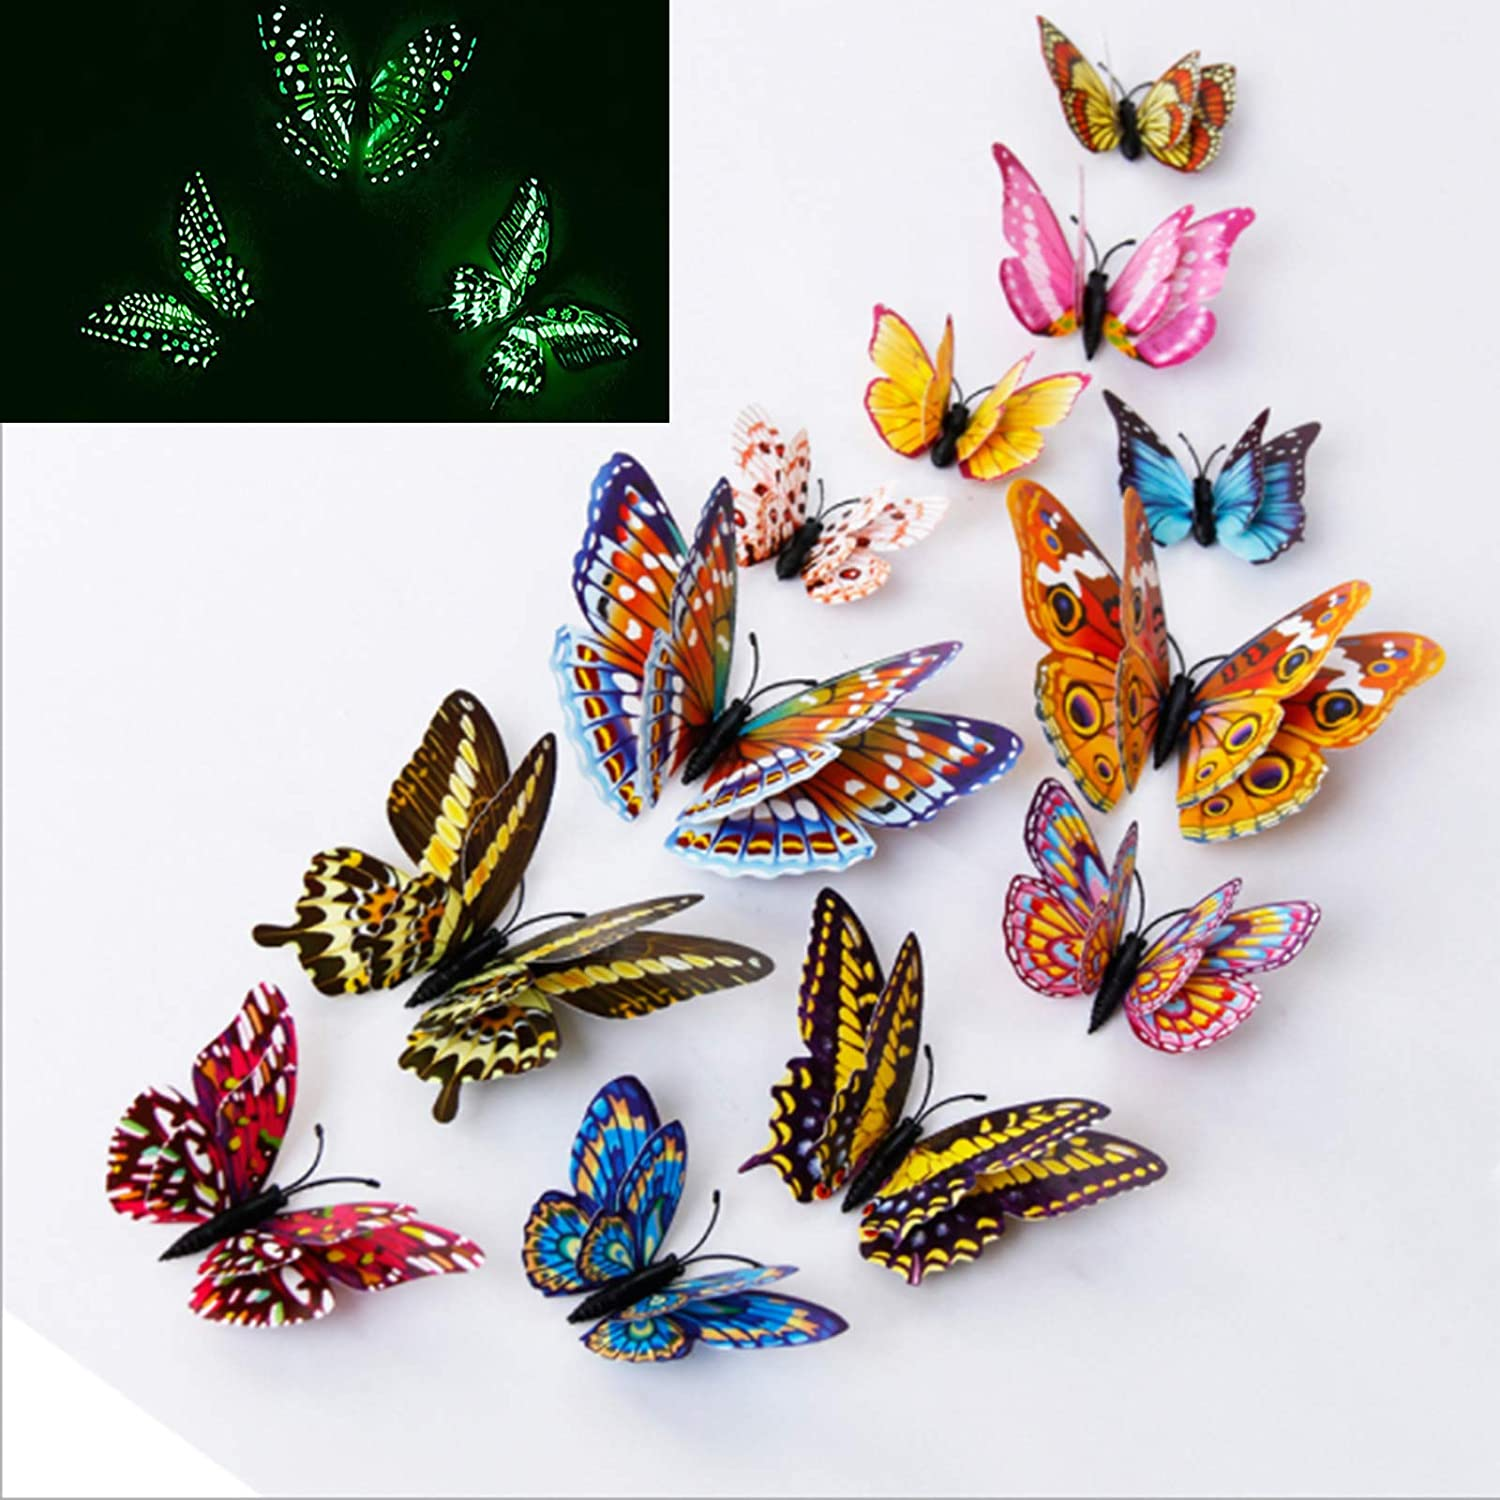 SHCHA 12 PCS Butterfly Wall Decals With Luminous Function, 3D Butterflies Removable Mural Stickers Wall Stickers Art Decal Home Decals Stickers Magnetic PVC Kids Girls Baby Women Bedroom Living Room&Garden Decor DIY Stickers